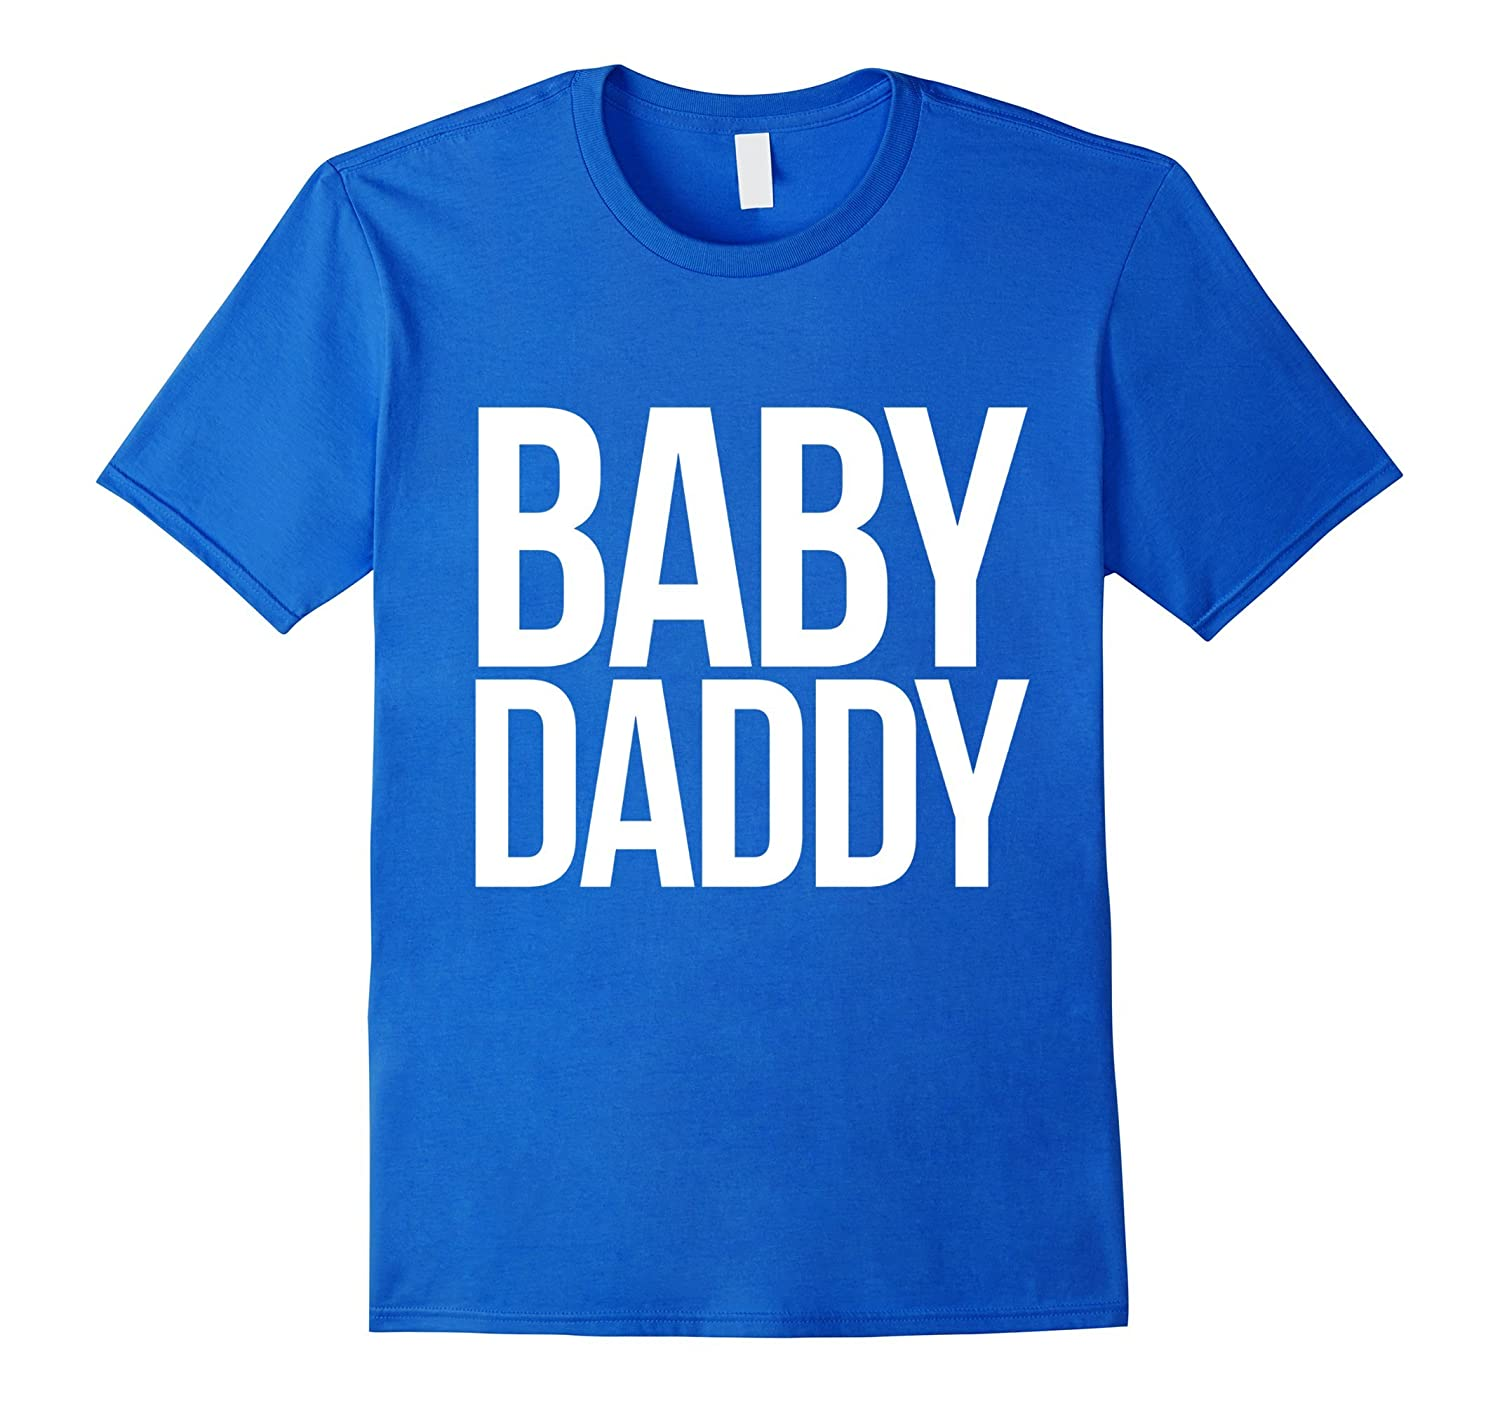 Baby daddy t-shirt funny new dad to be shirt fathers day t-TH